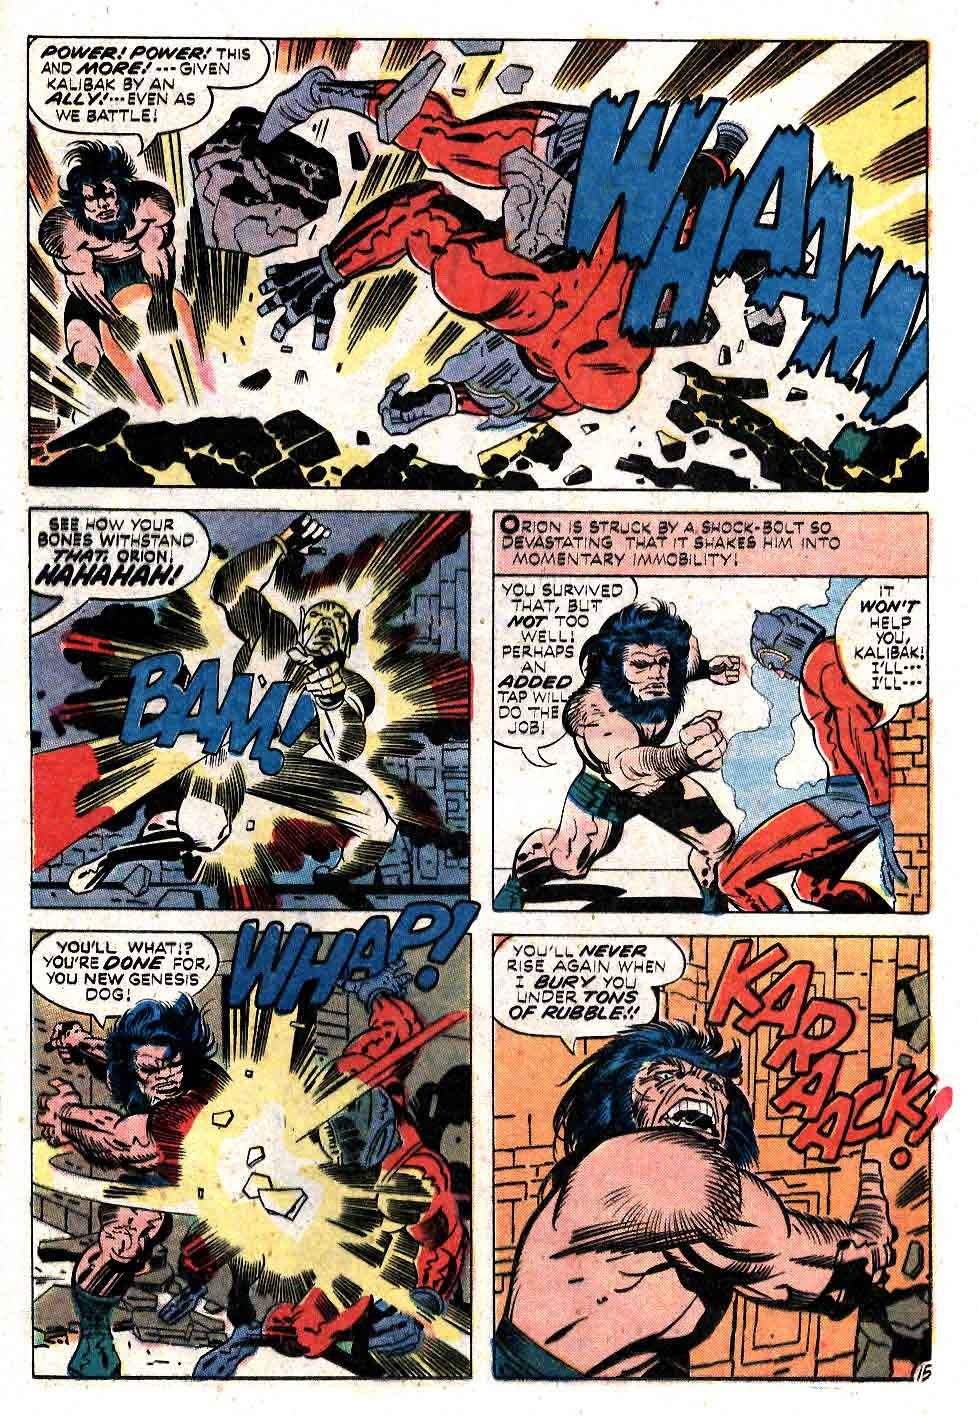 New Gods v1 #11 dc bronze age comic book page art by Jack Kirby